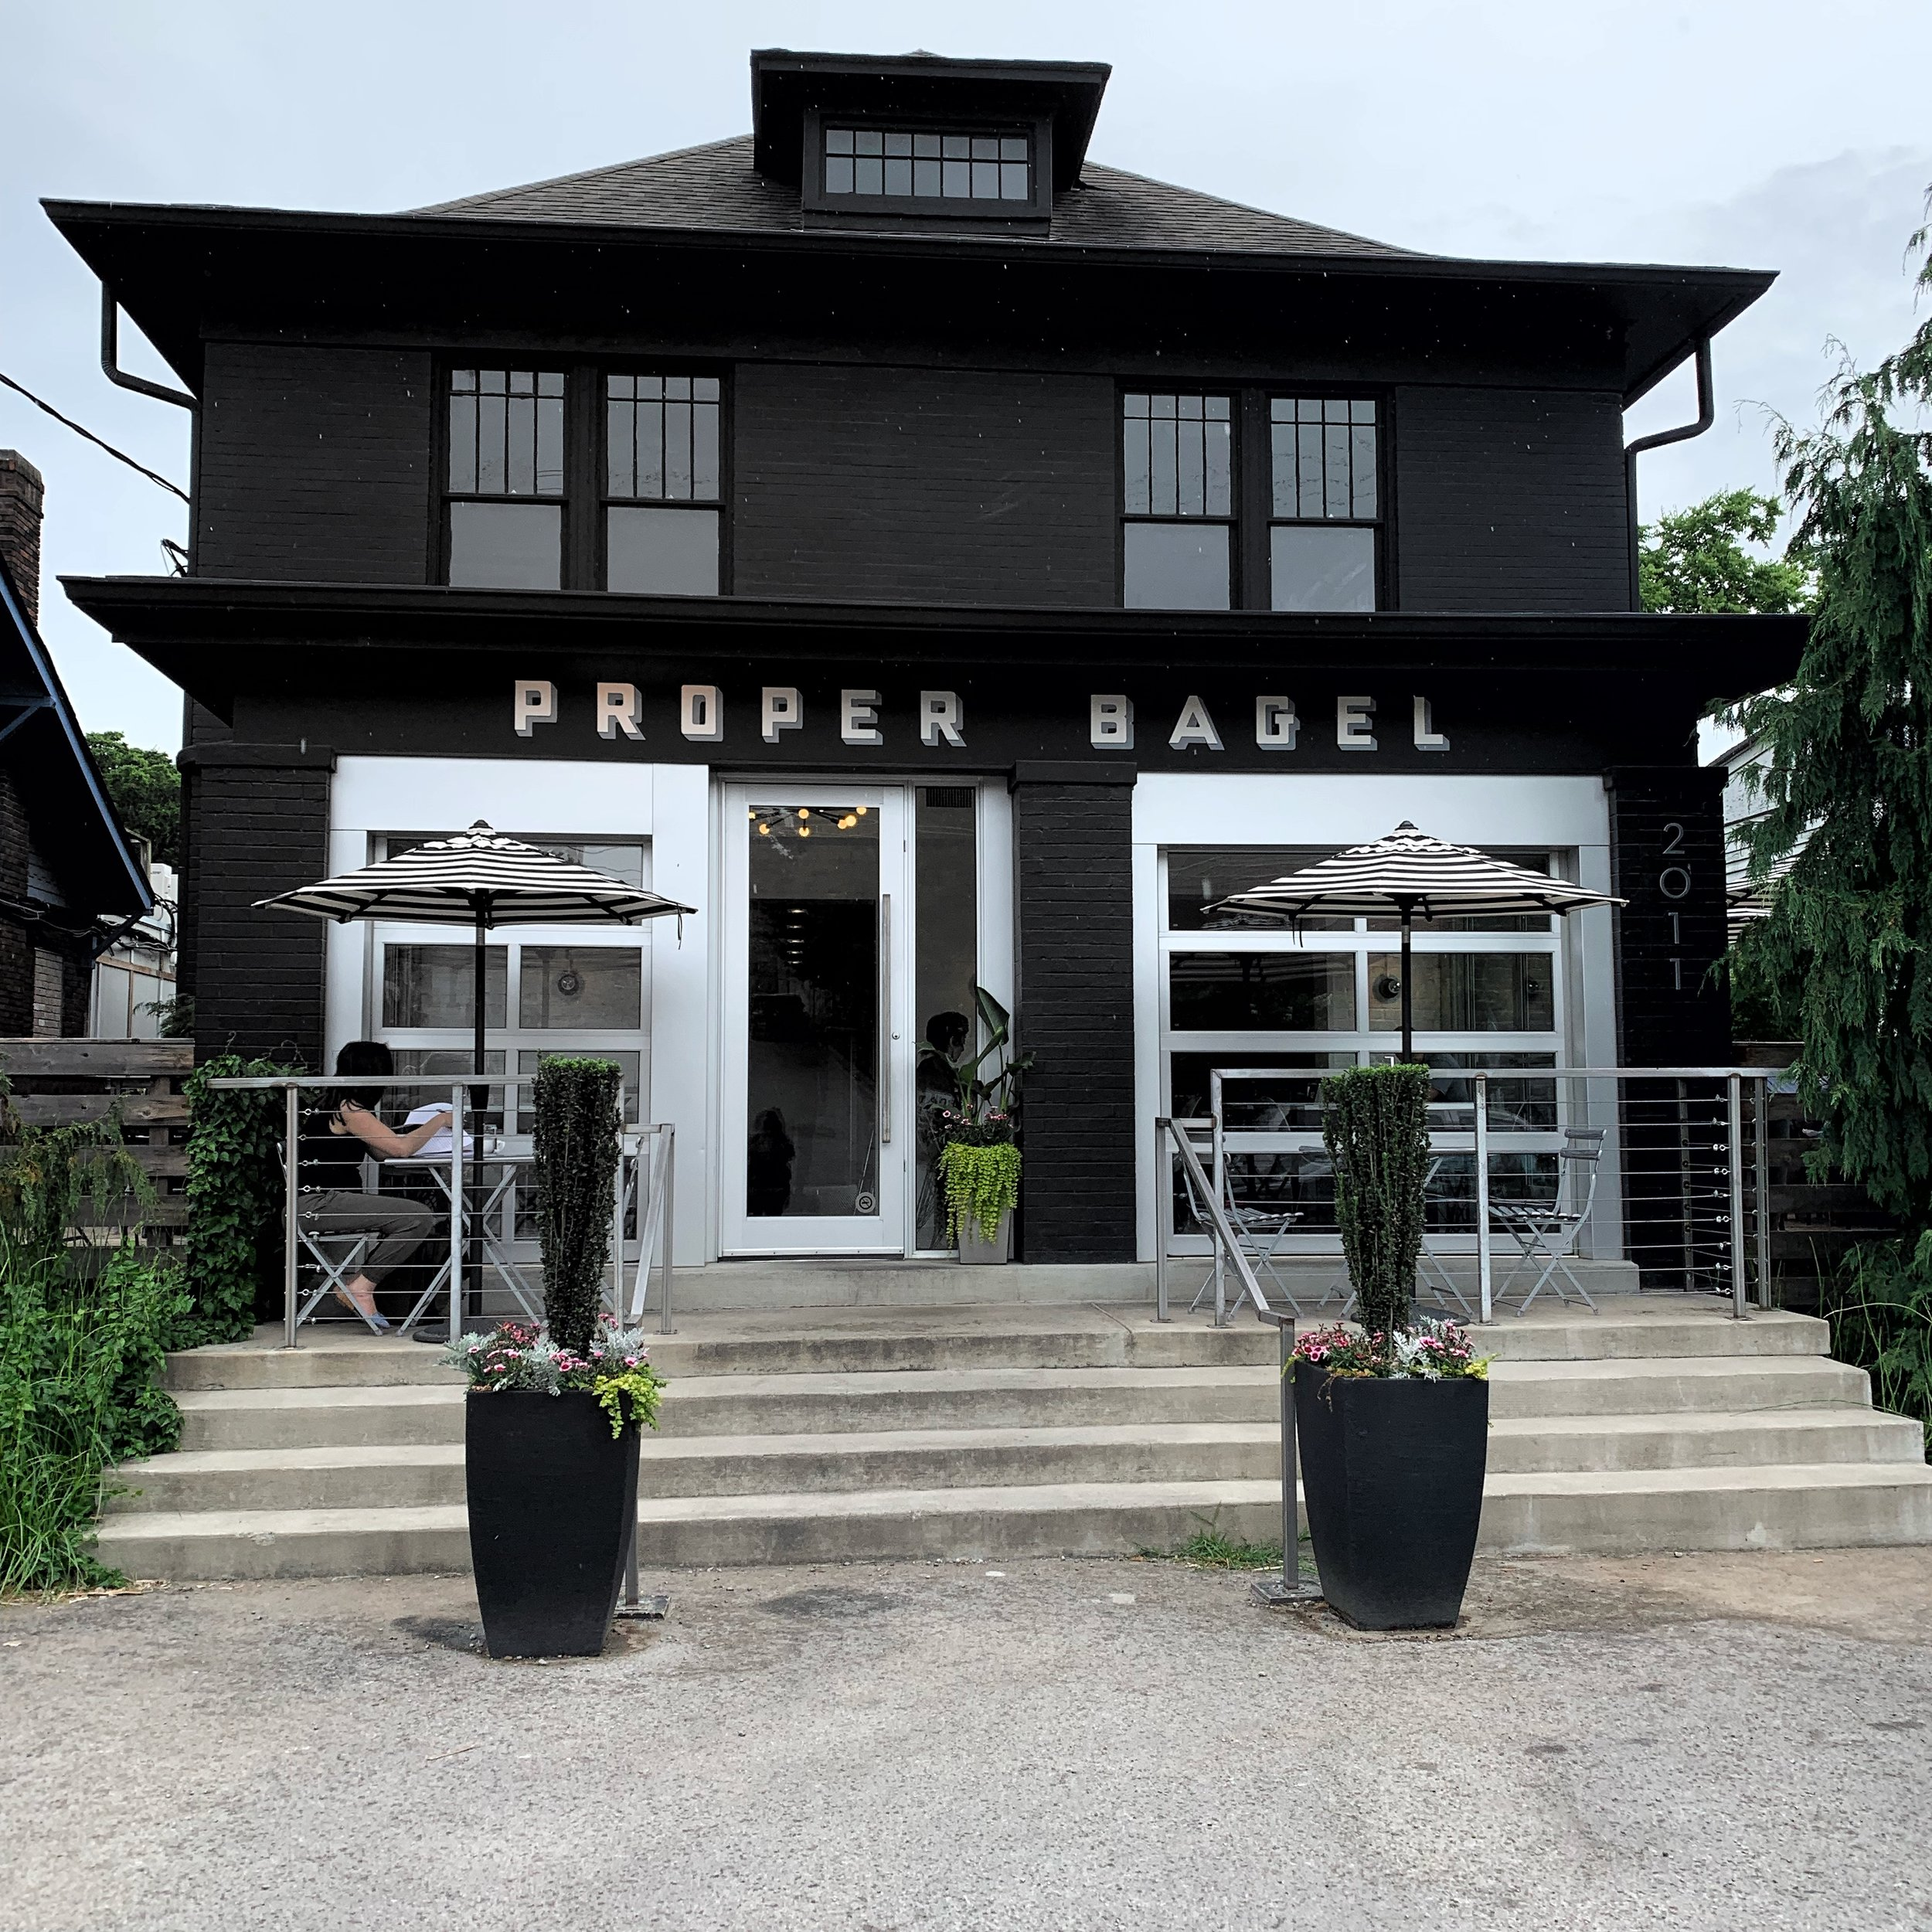 42 hours in Nashville - styled sustainable - proper bagel